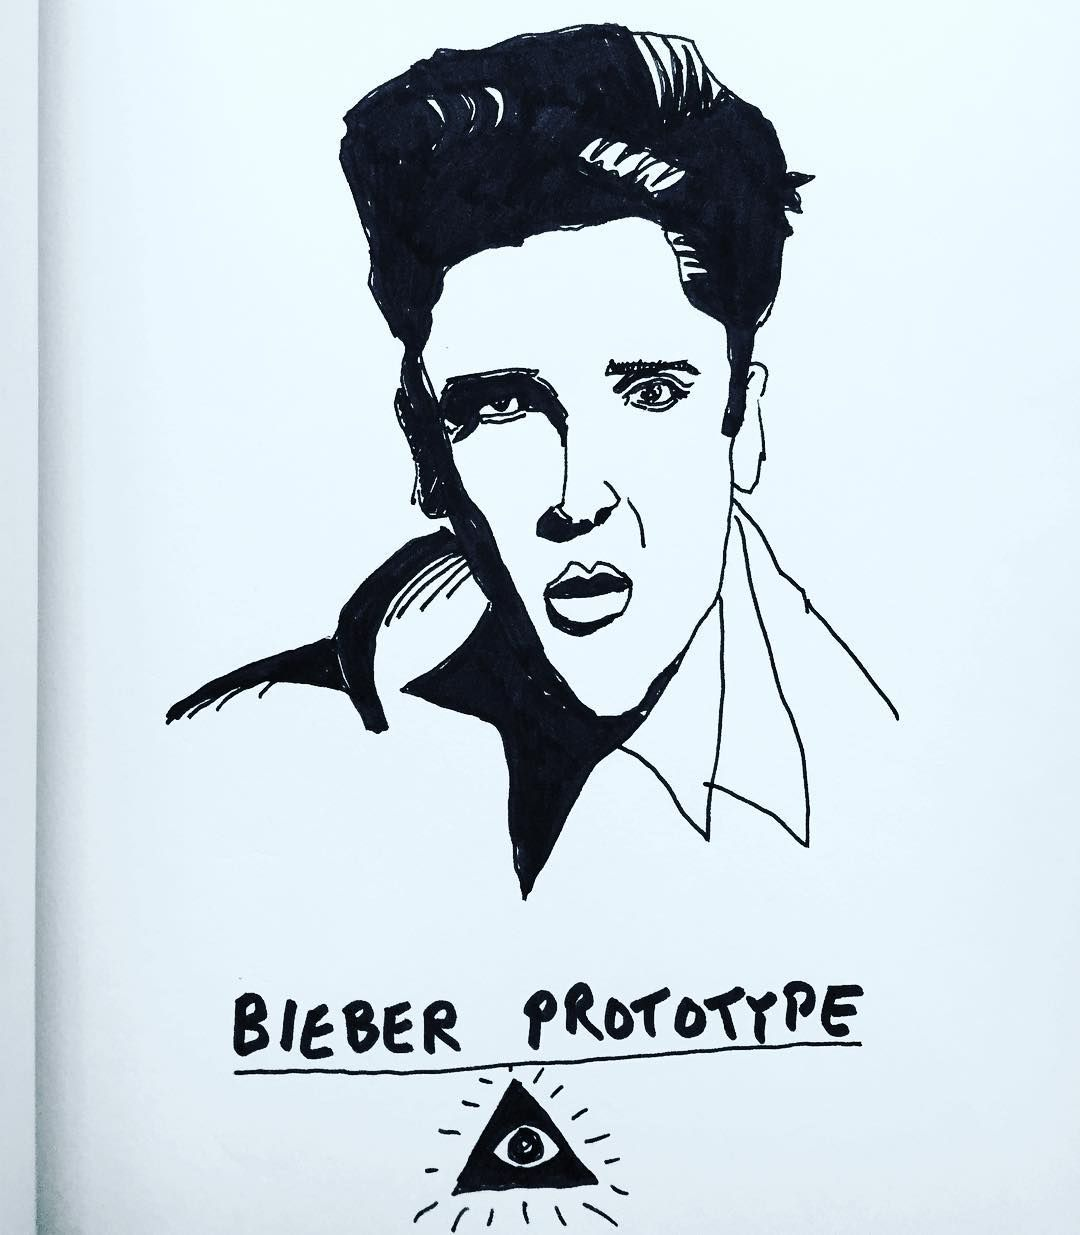 Bieber Prototype #bieber #elvis #art #illustration #music #popart #instaartist #popular #love #drawing